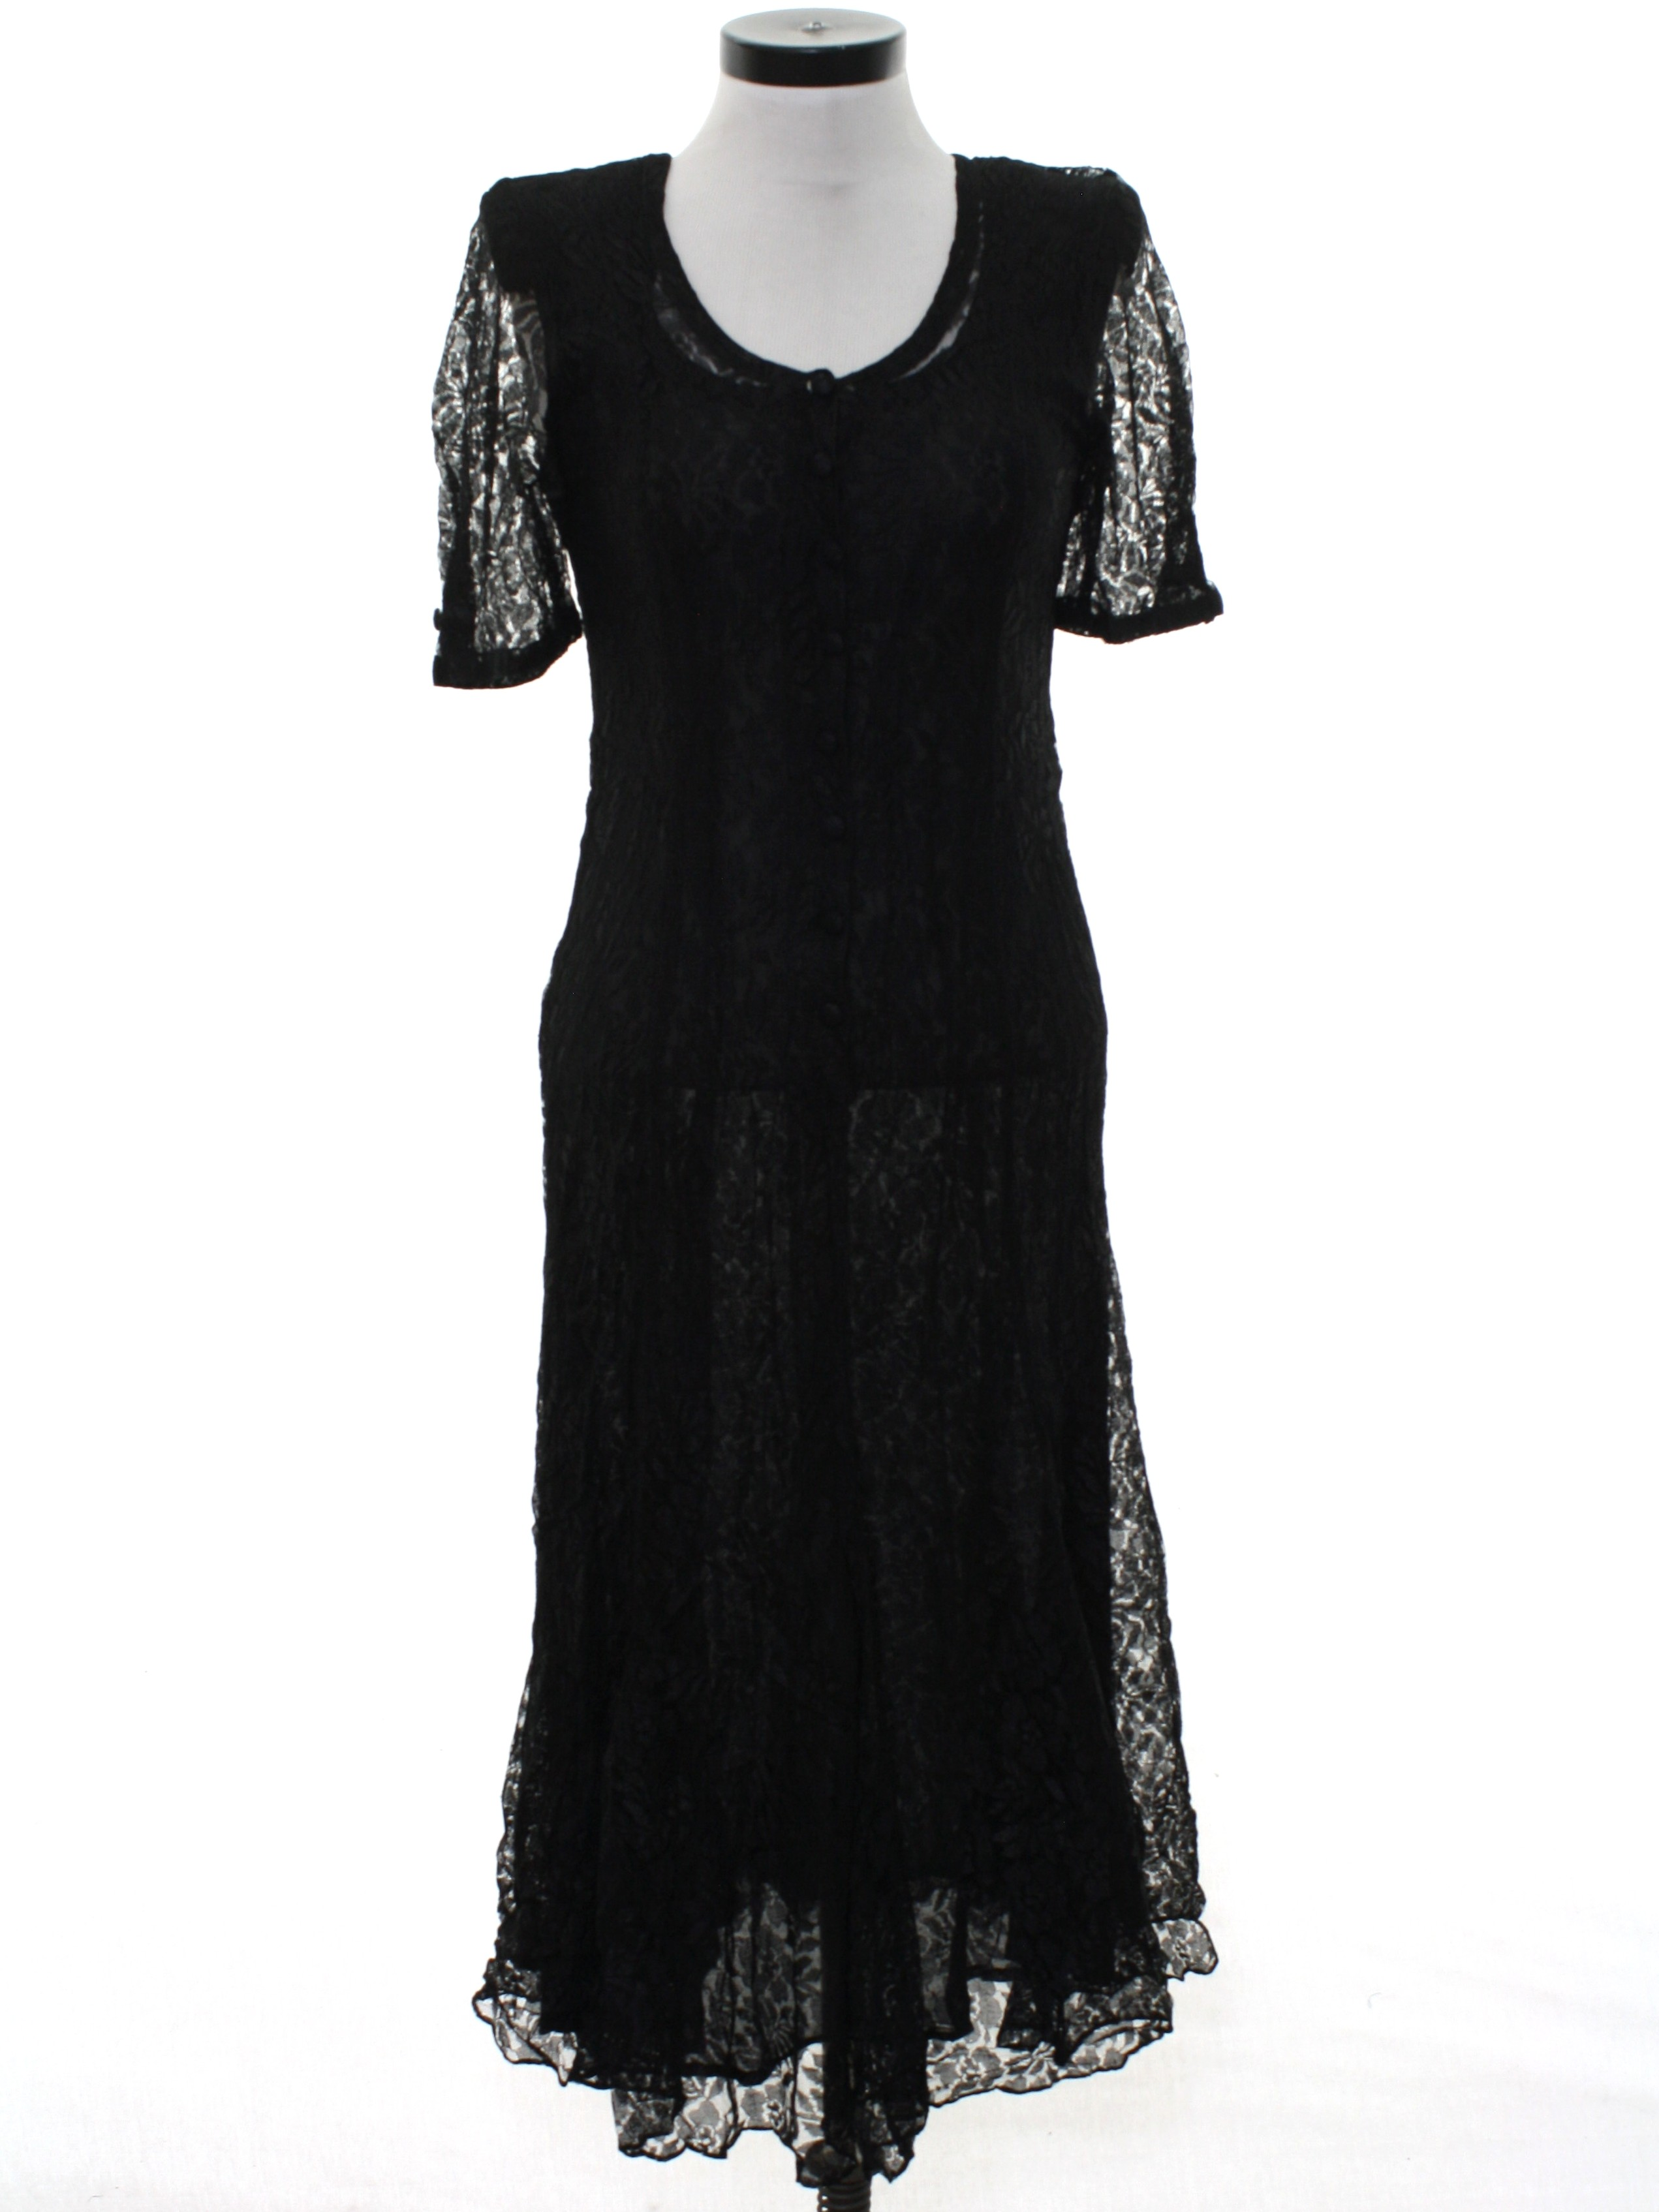 15b21f7a Vintage 1990's Cocktail Dress: Early 90s -Nostalgia- Womens black ...